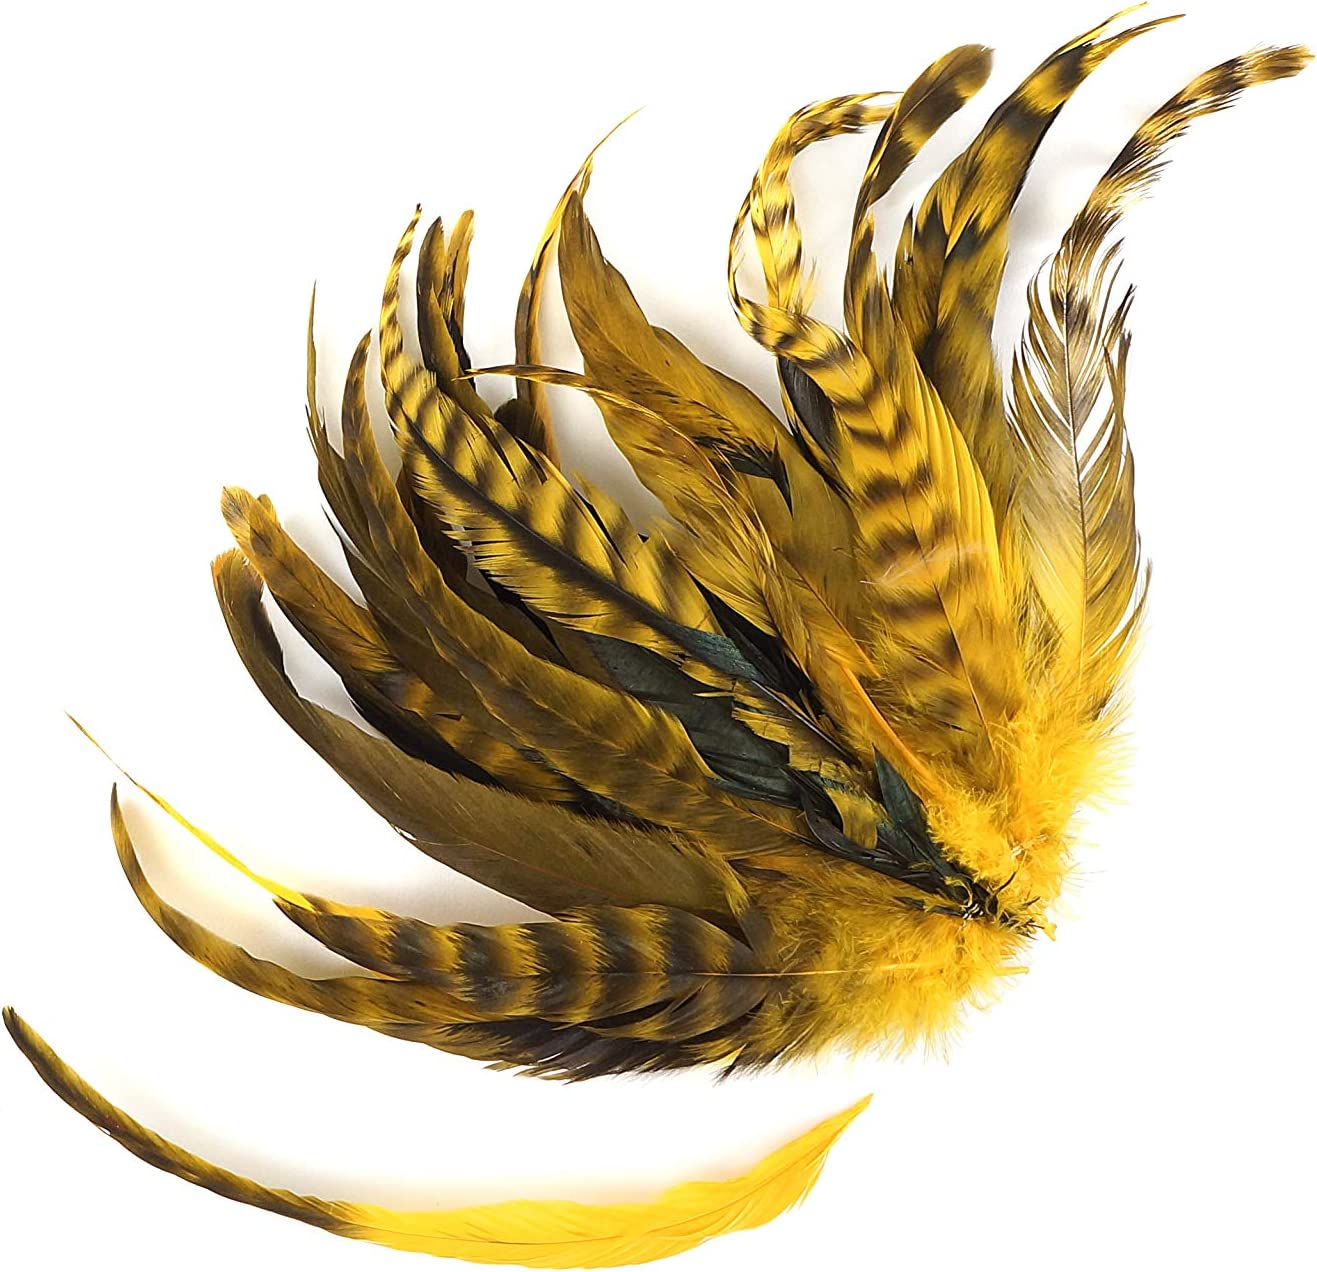 8-10 inch Colorful Rustic Craft Supply for DIY Home Decor ZUCKER 25pc Rooster Chinchilla Tail Feathers Yellow Gold